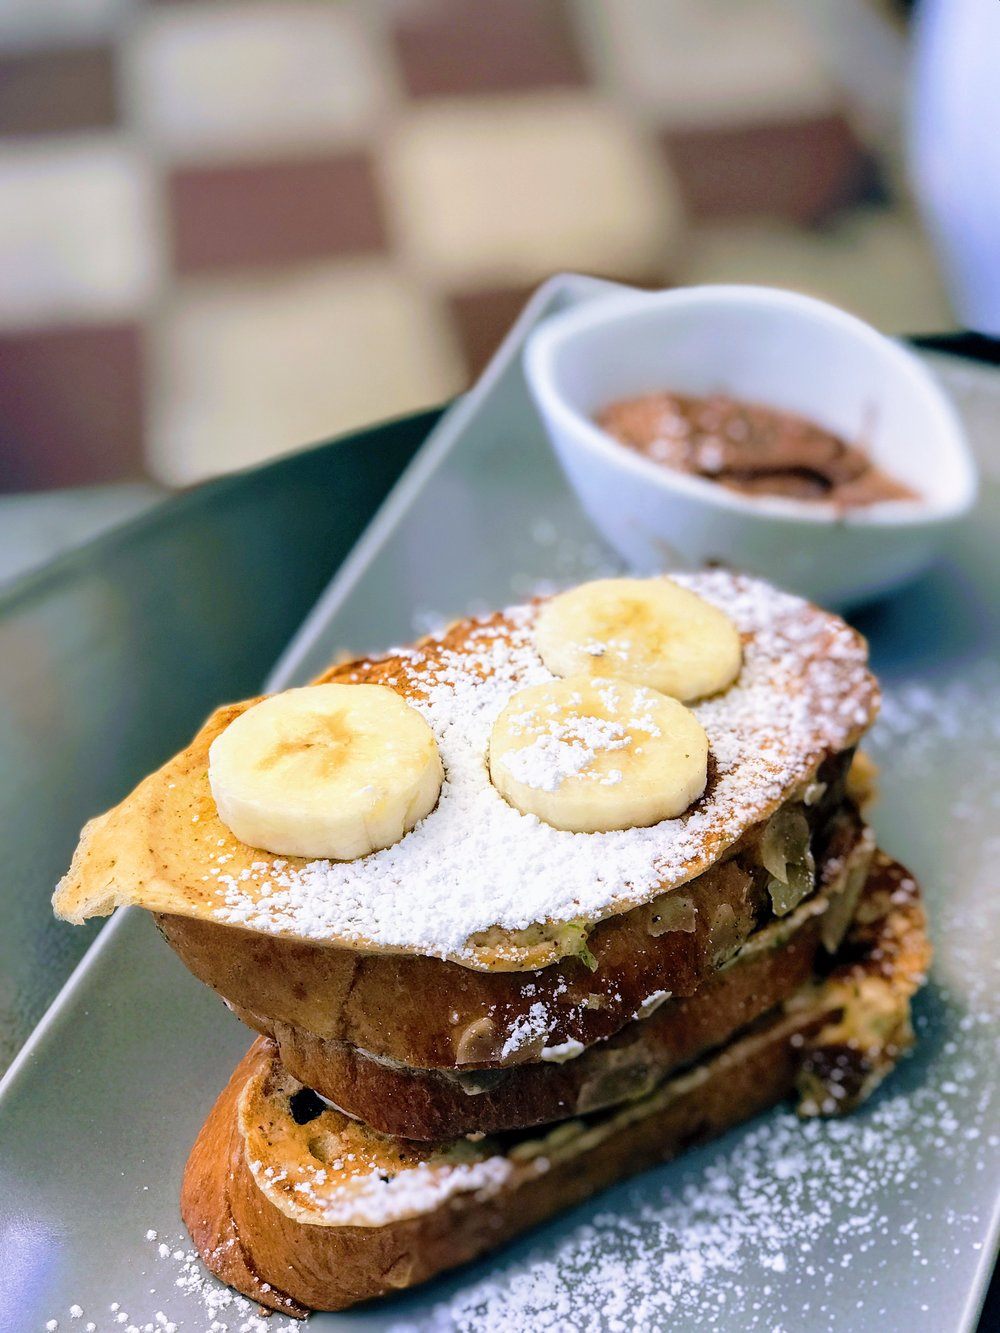 French toast with banana and praline spread